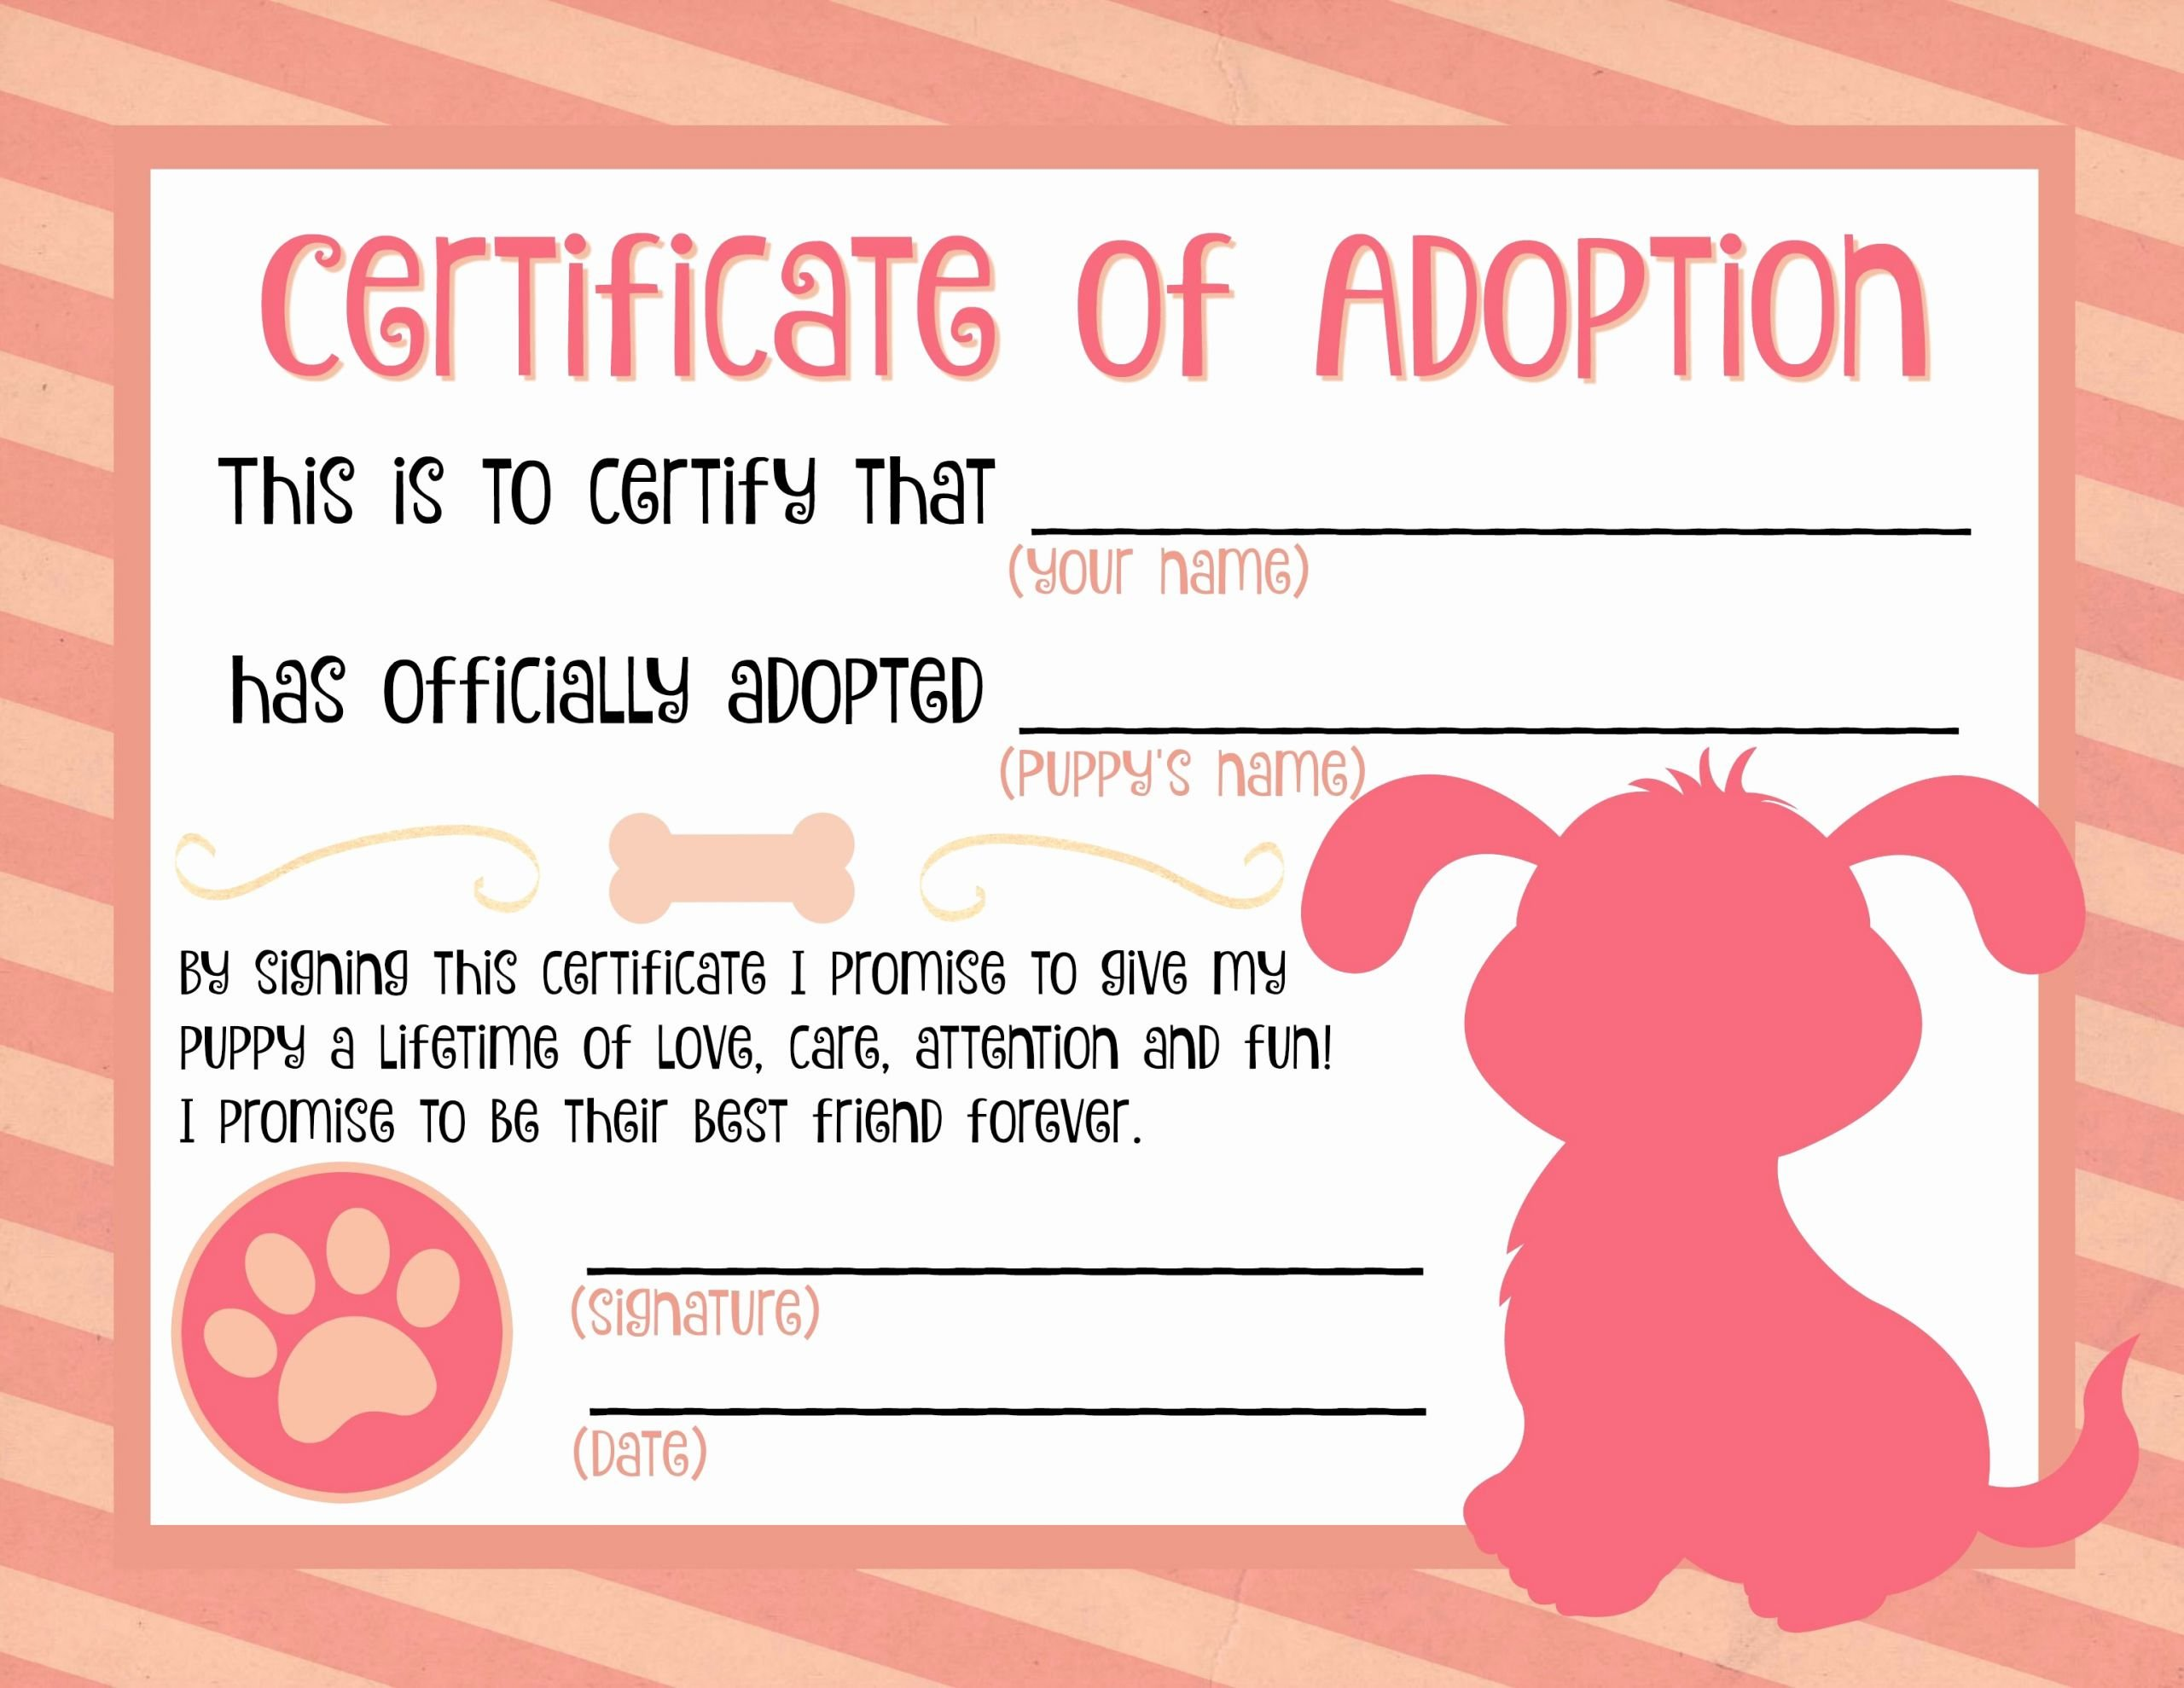 Puppy Adoption Certificate Template Awesome Best 25 Adoption Certificate Ideas On Pinterest